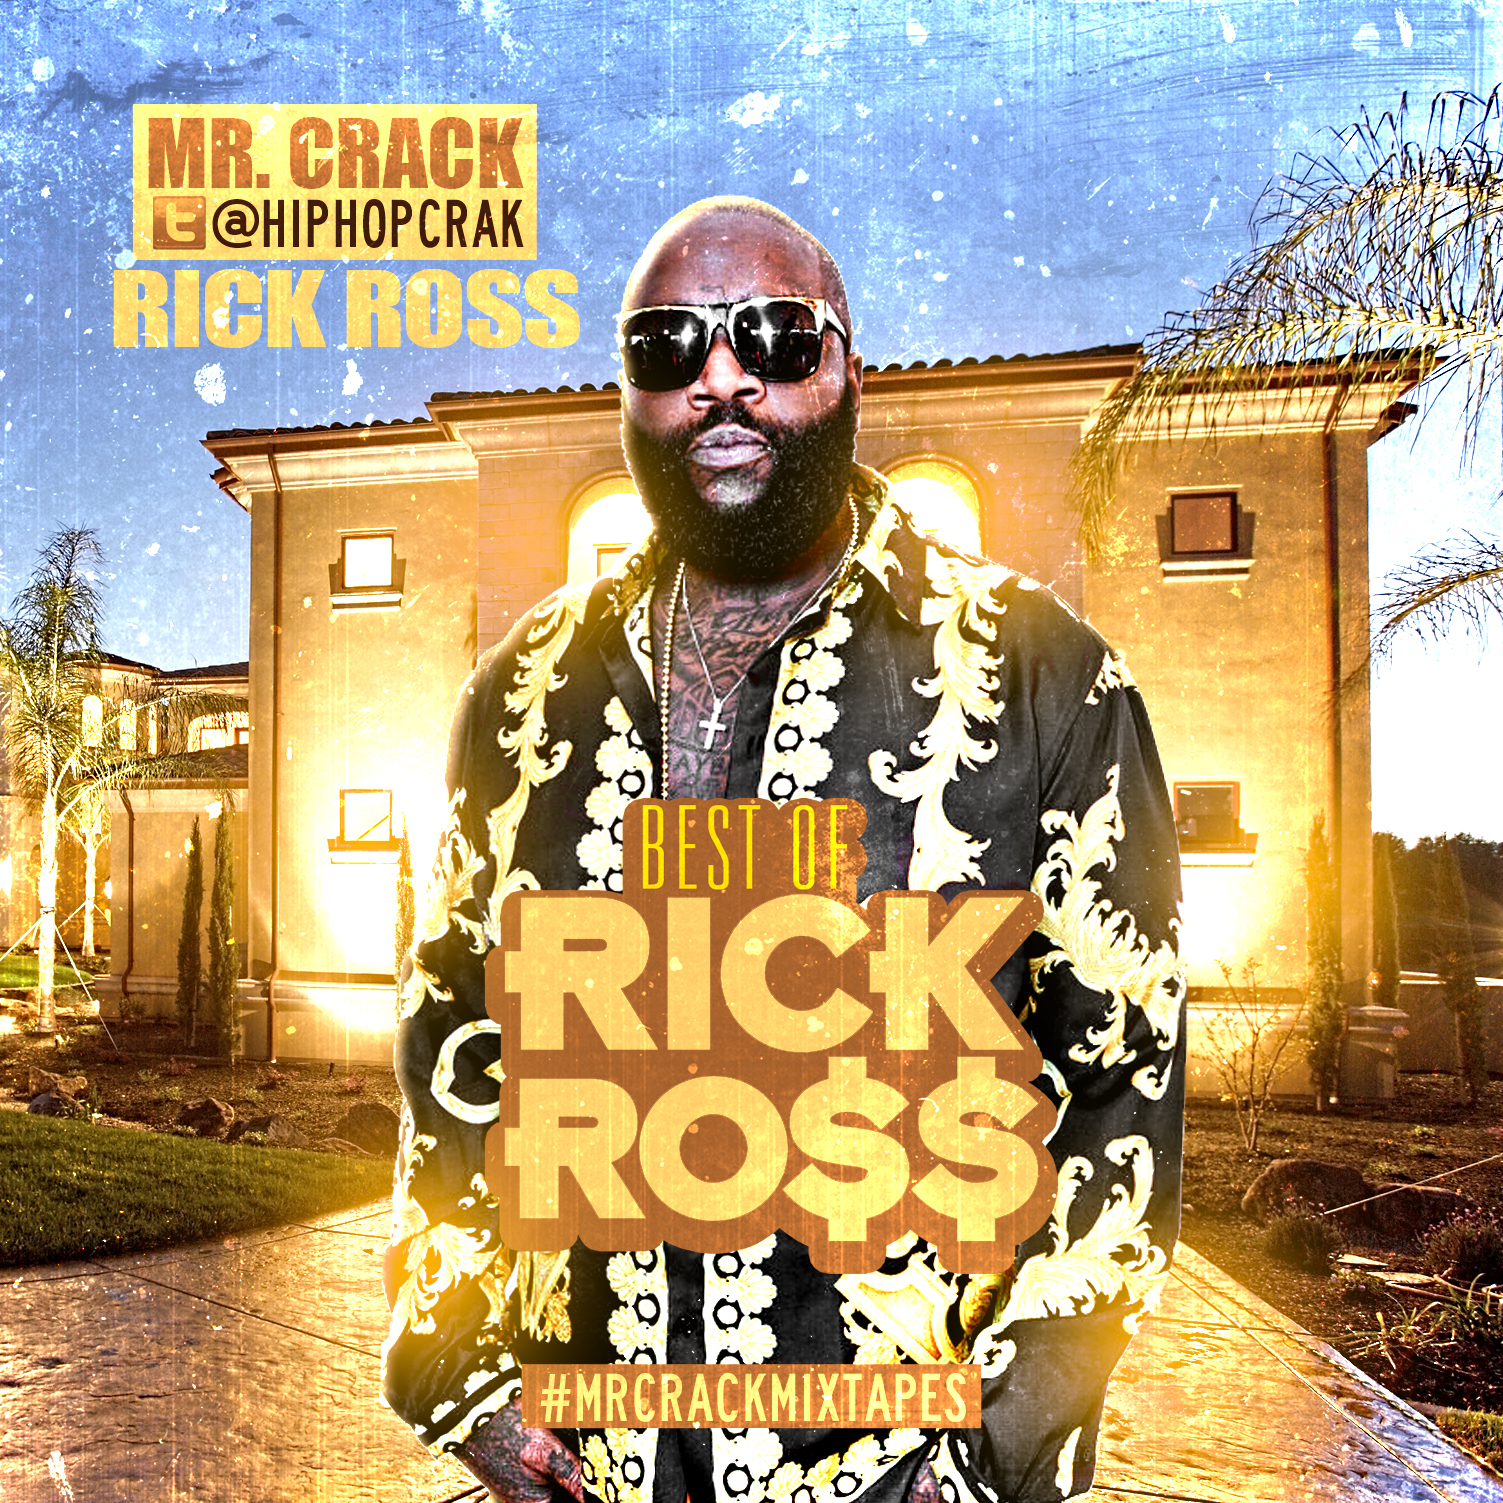 Mr Crack - The Best Of Rick Ross